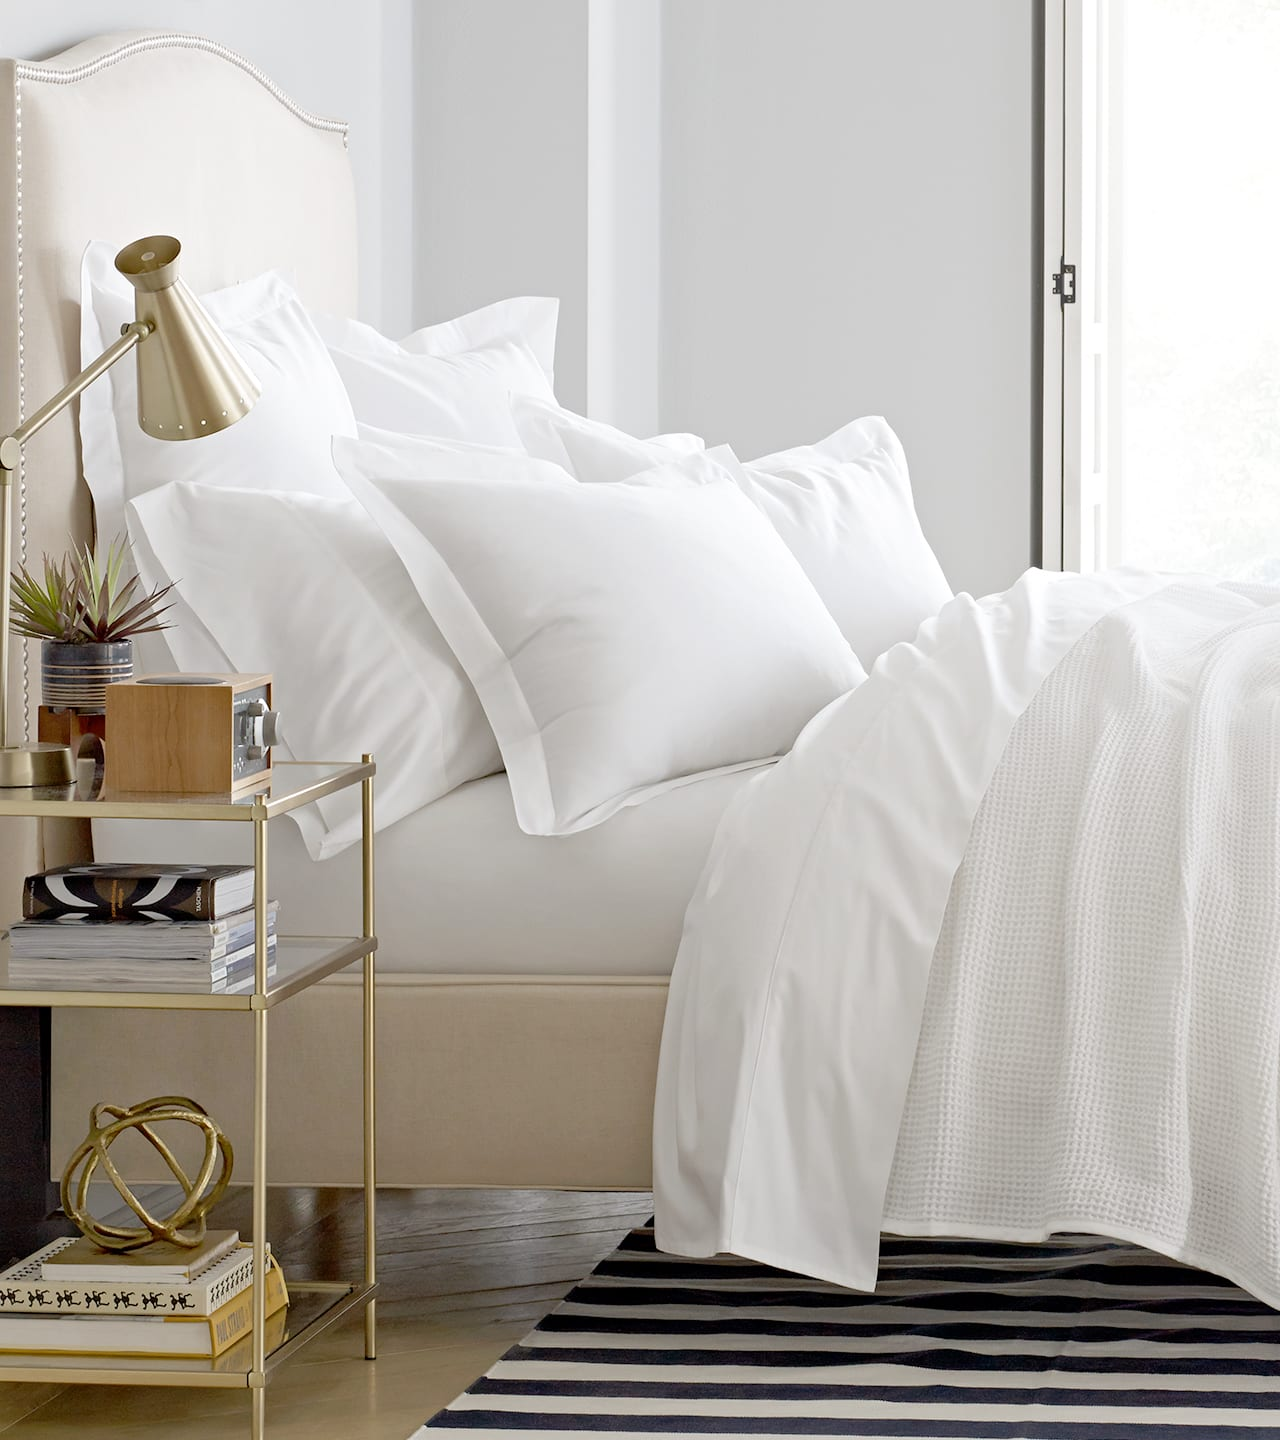 Side Image of a bed with white sheeting